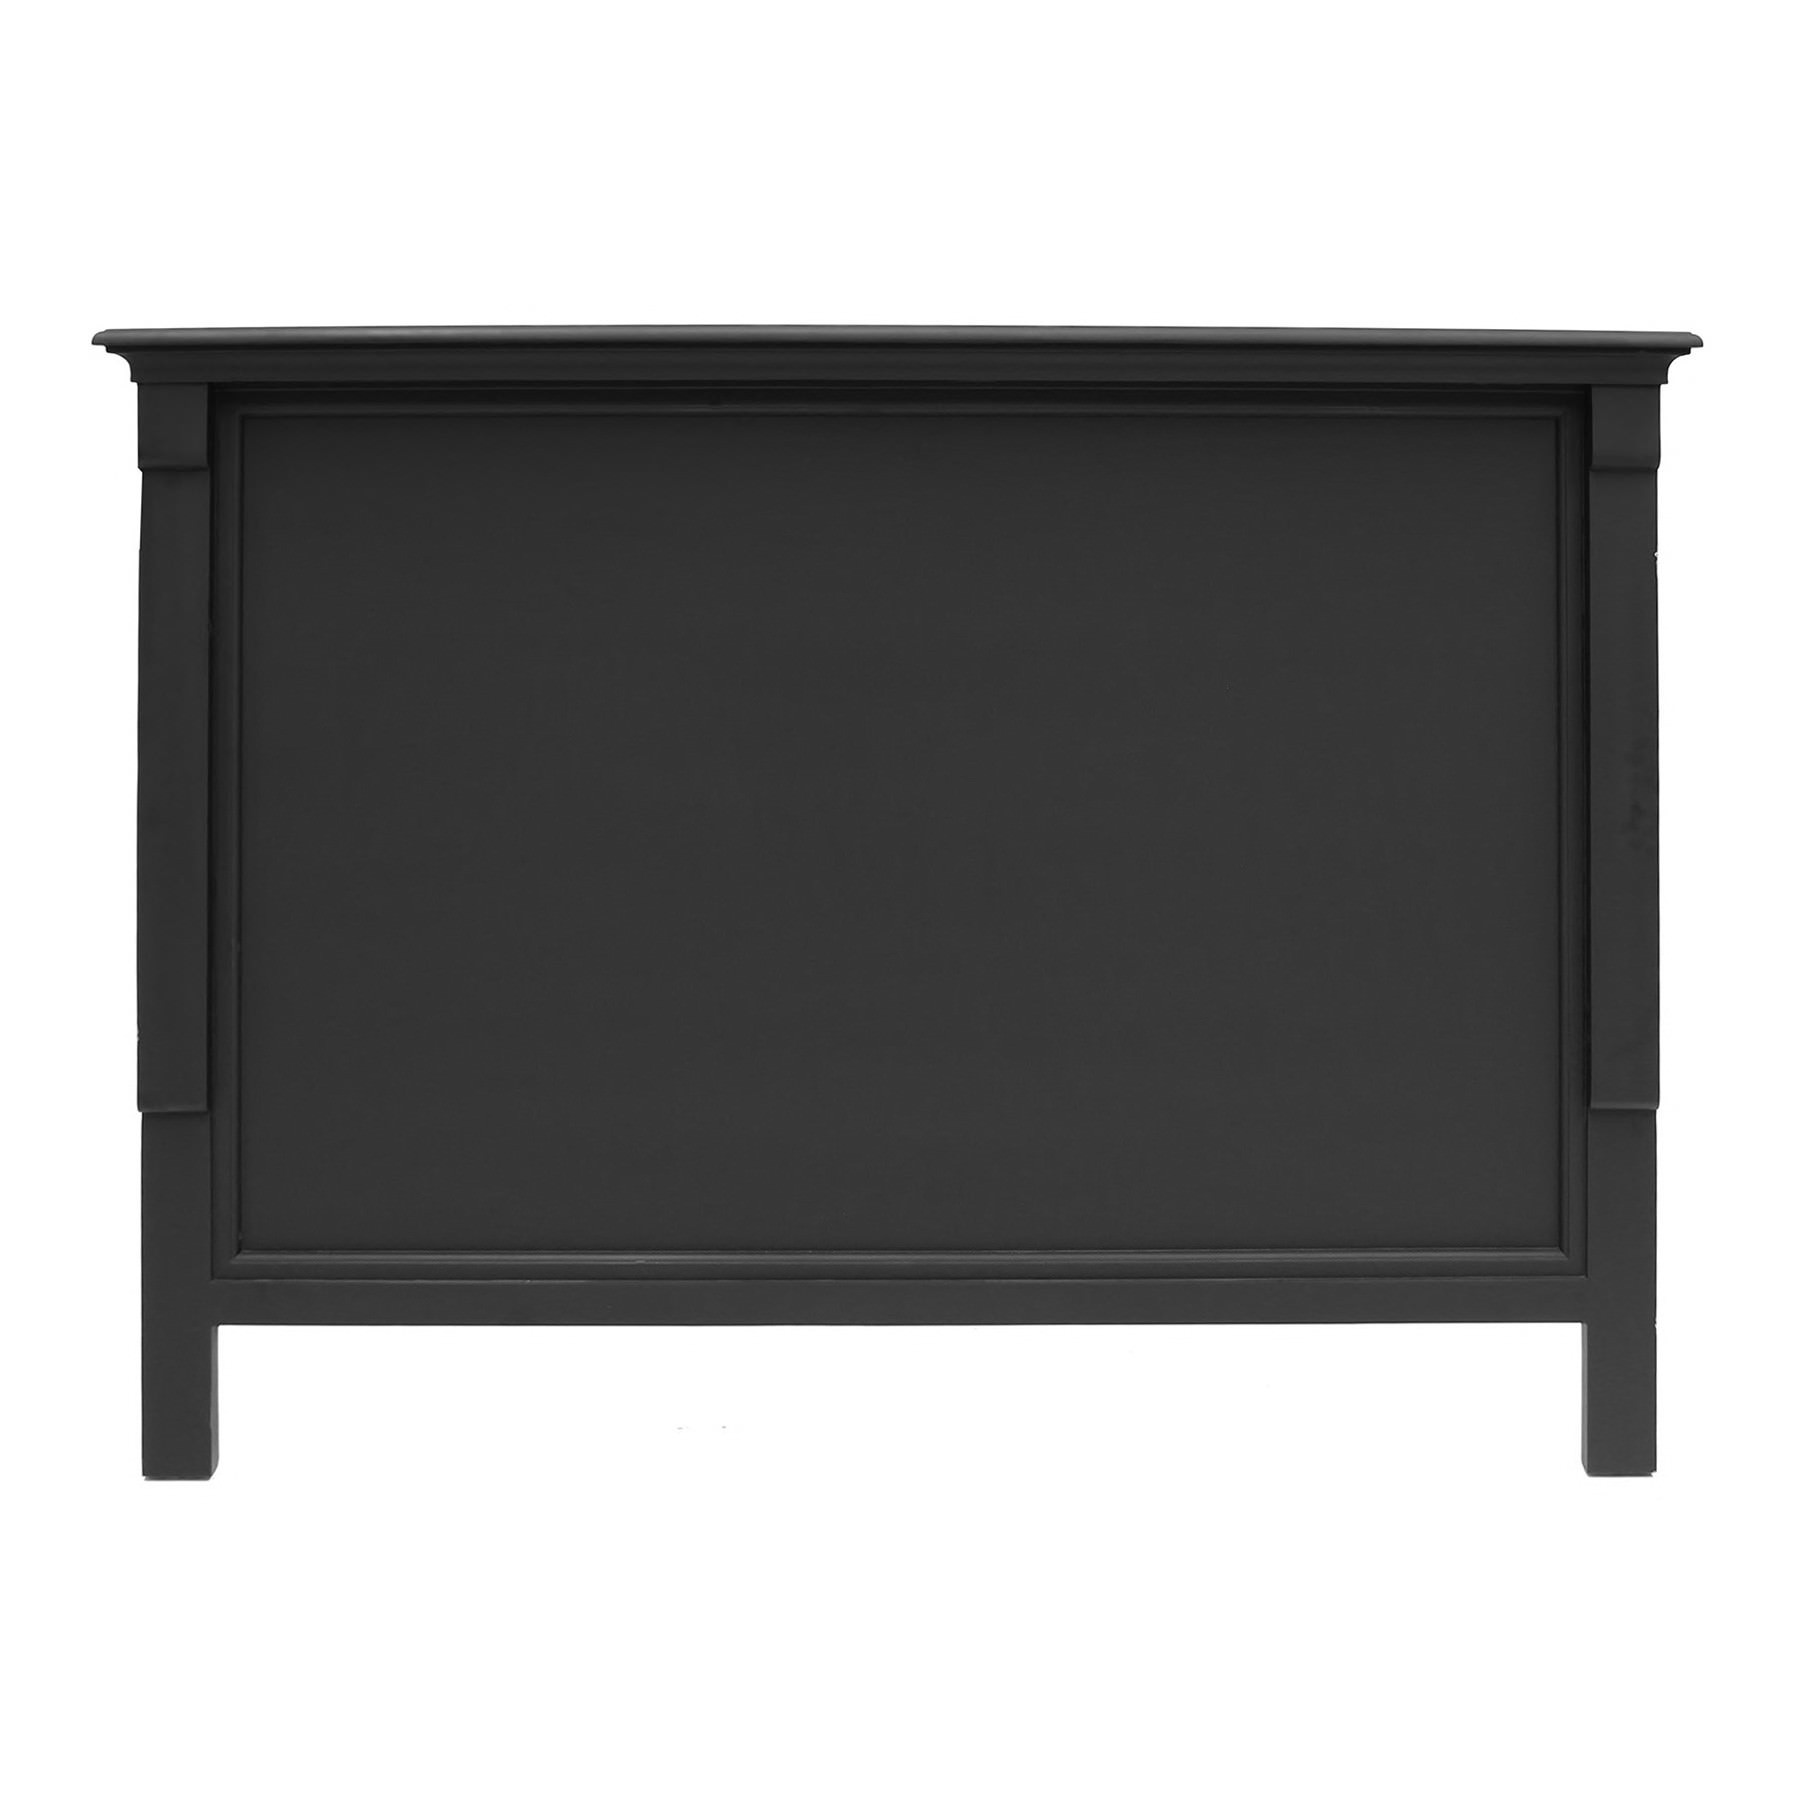 Belley Hand Crafted Mahogany Timber  Bed Headboard, Queen, Black